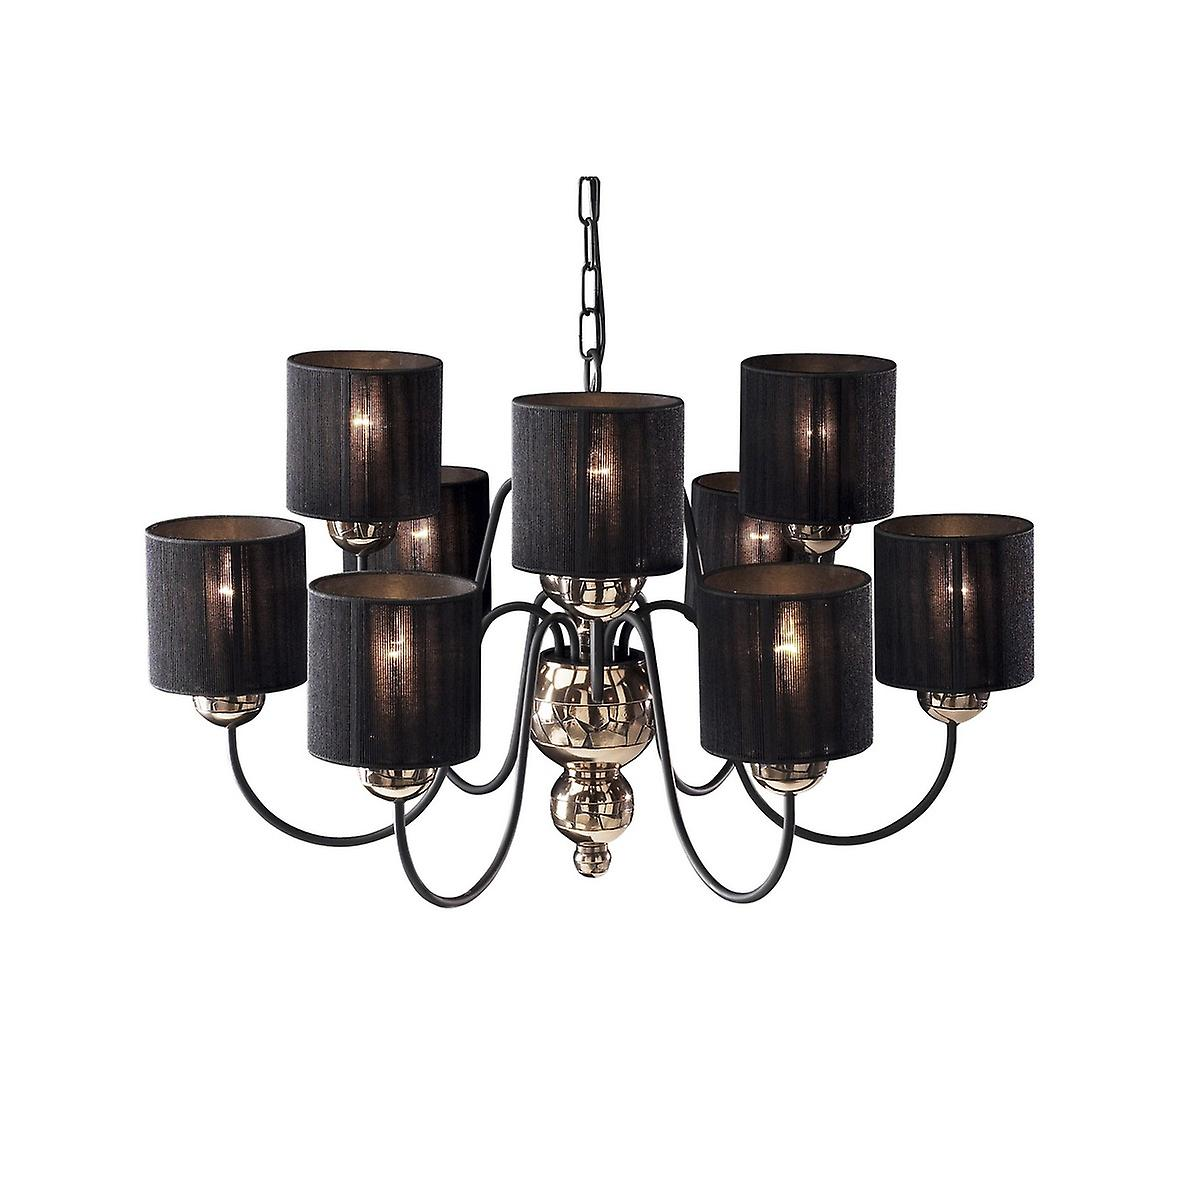 David Hunt GAR1363 Garbo 9 Light Pendant In A Bronze Finish With Black String Shades